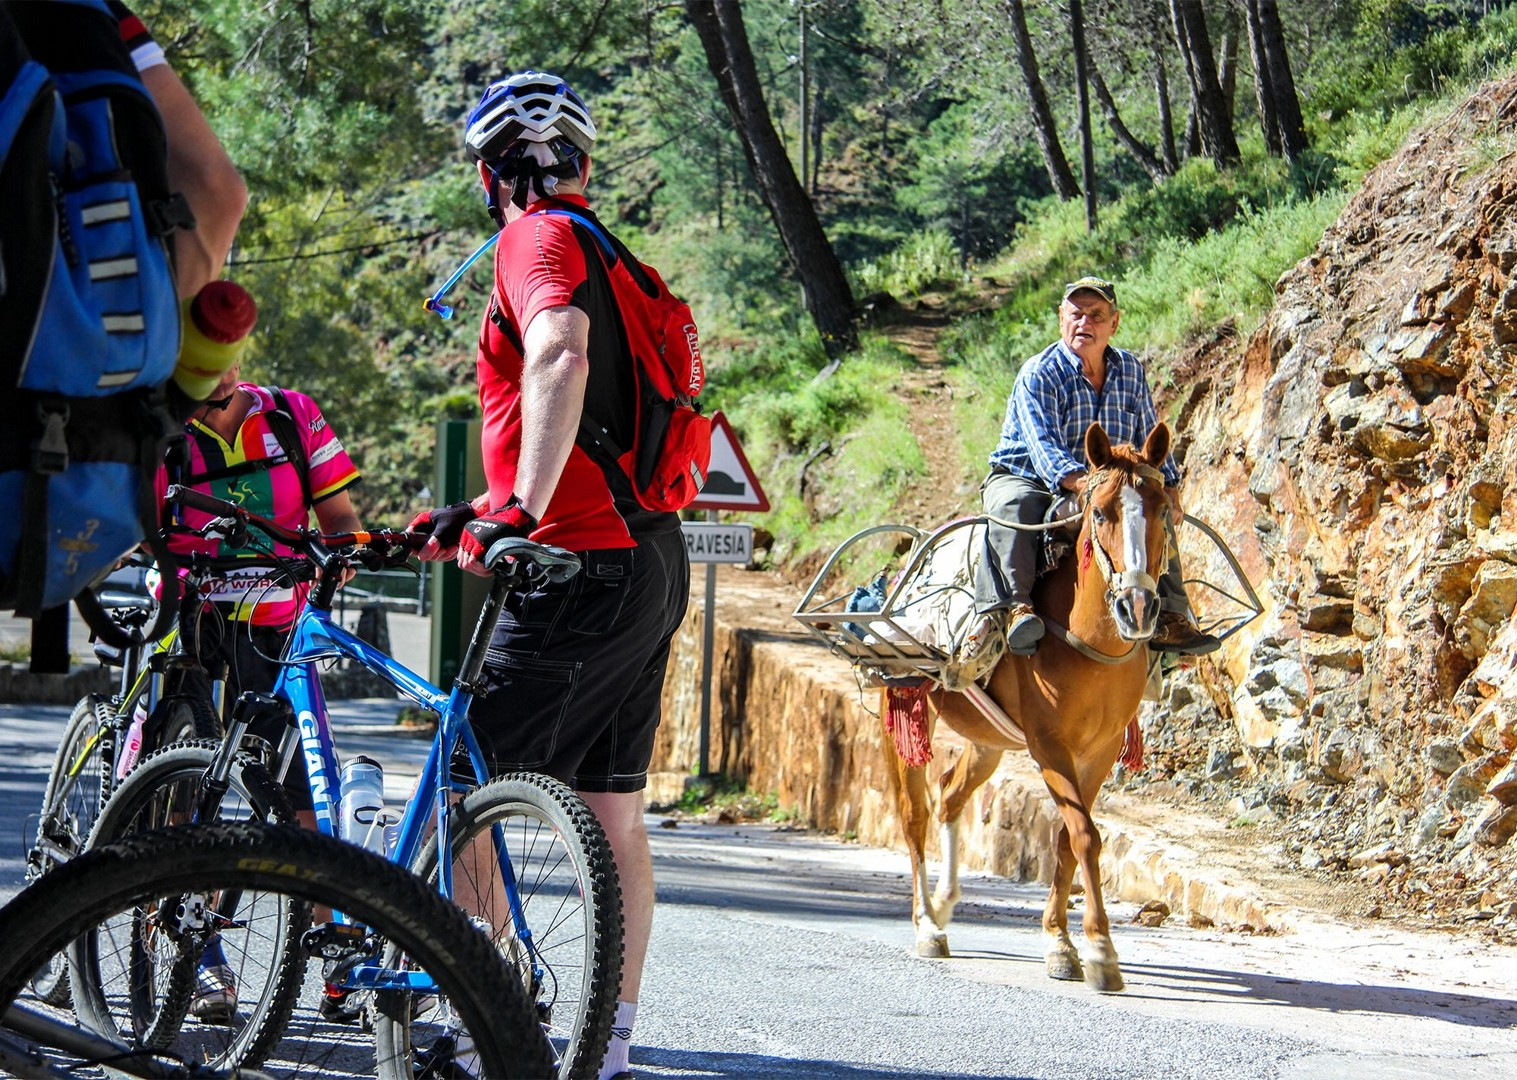 trans-andaluz-saddle-skedaddle-tour-mountain-bike.jpg - Spain - Trans Andaluz - Guided Mountain Bike Holiday - Mountain Biking